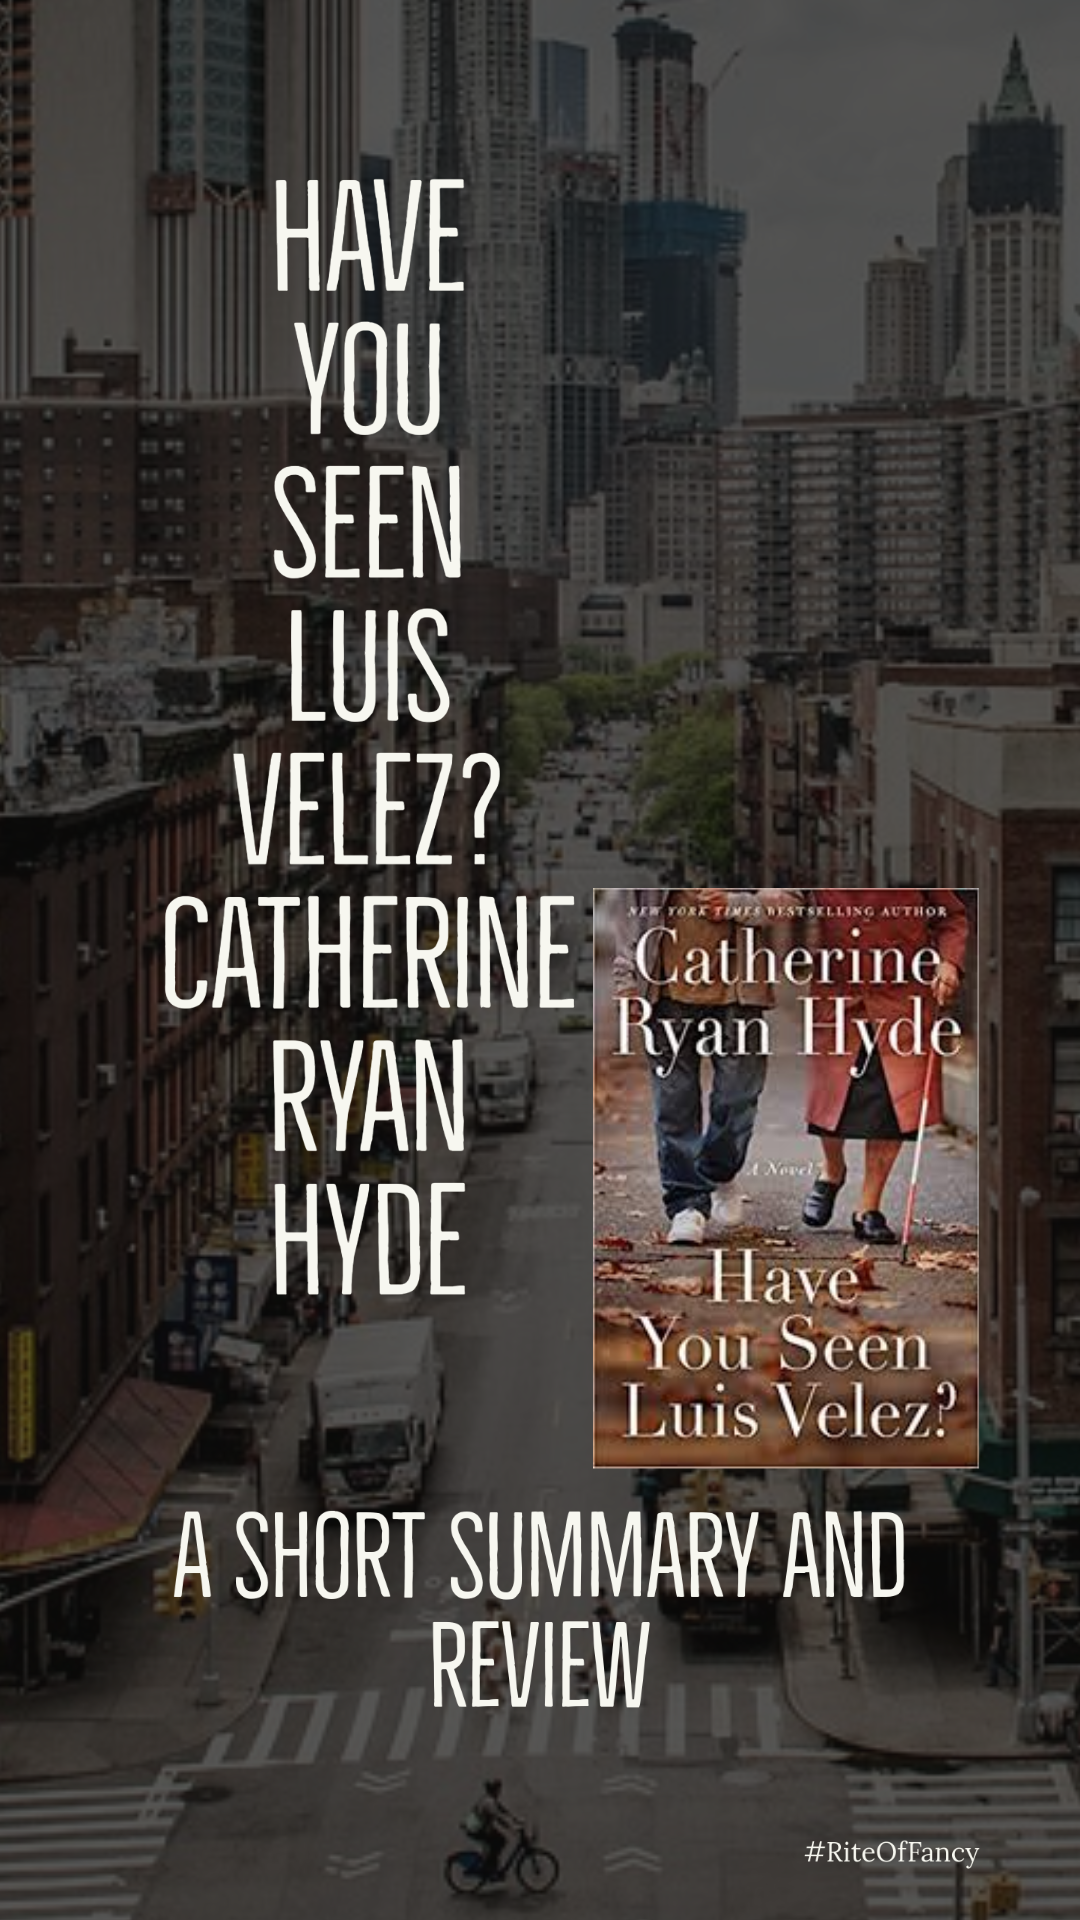 Have You Seen Luis Velez Catherine Ryan Hyde In 2021 Velez Have You Seen Books To Read